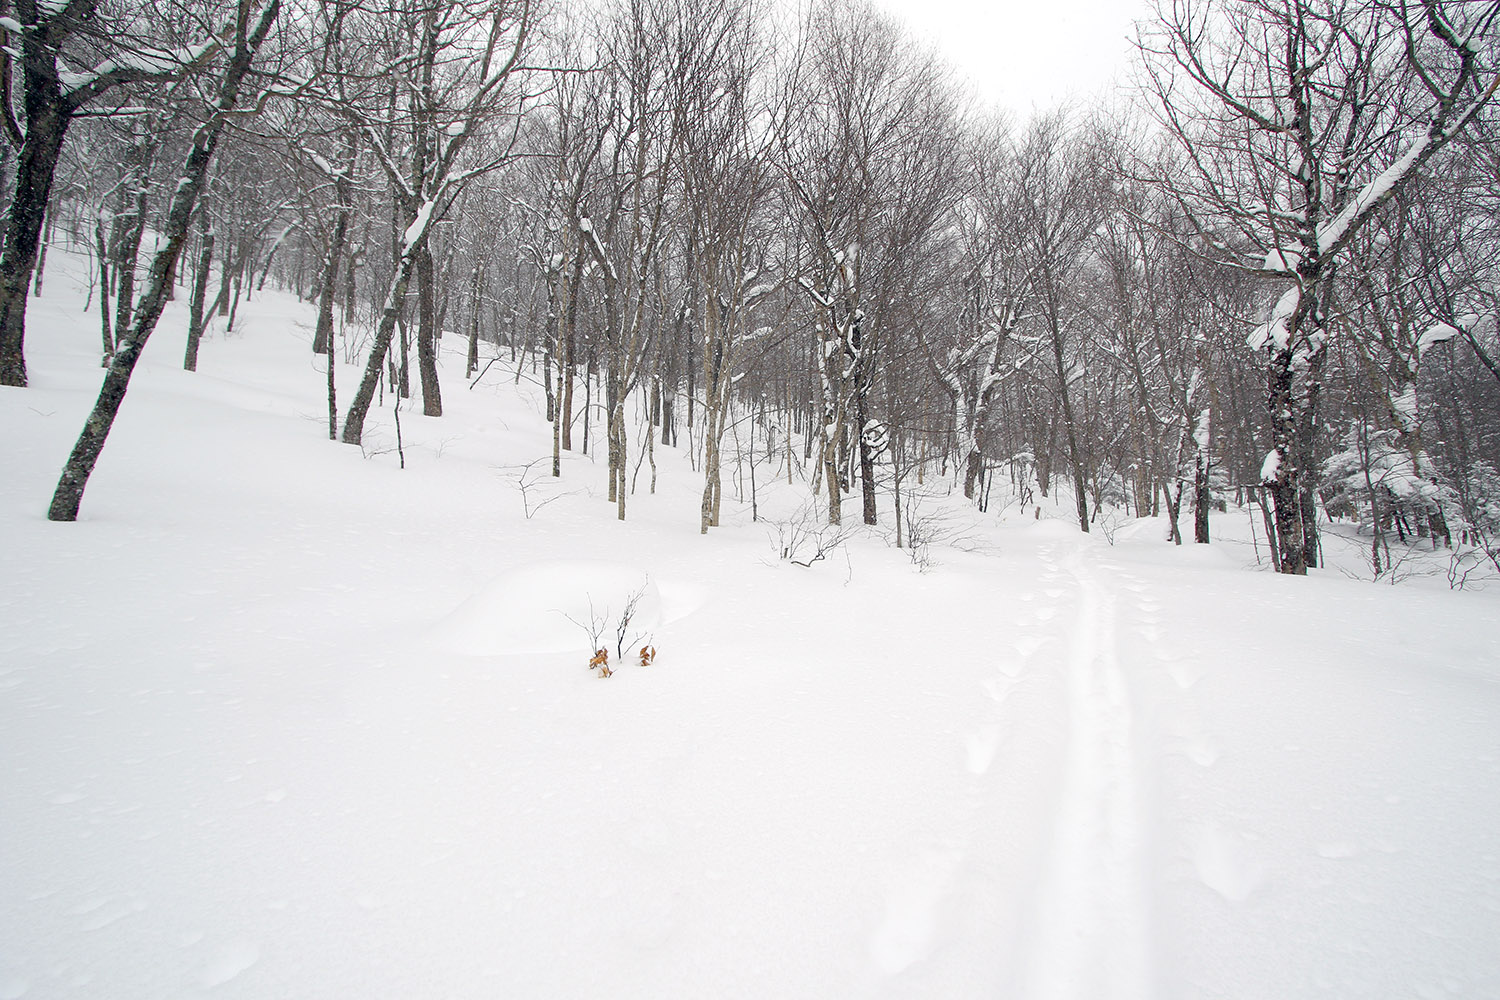 An image showing a skin track through Big Jay Basin near Jay Peak Ski Resort in Vermont, with large areas of nicely spaced trees for glade skiing in powder